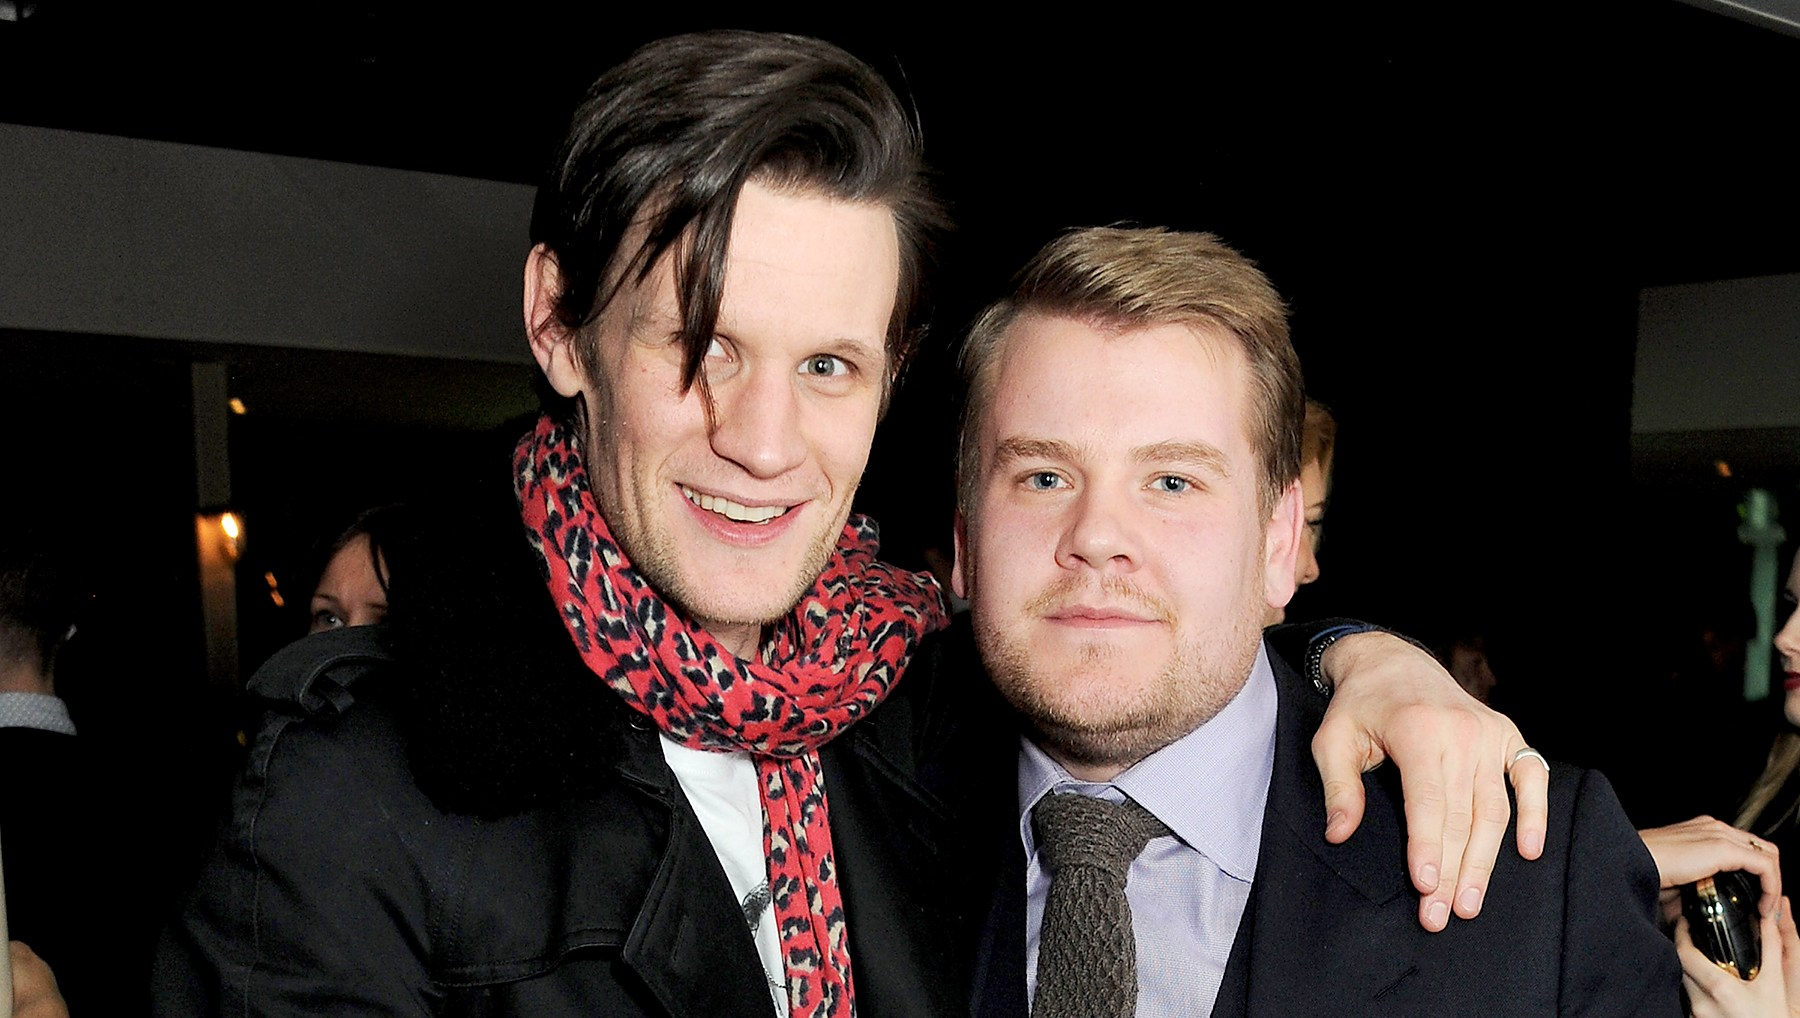 matt-smith-james-corden-drunk